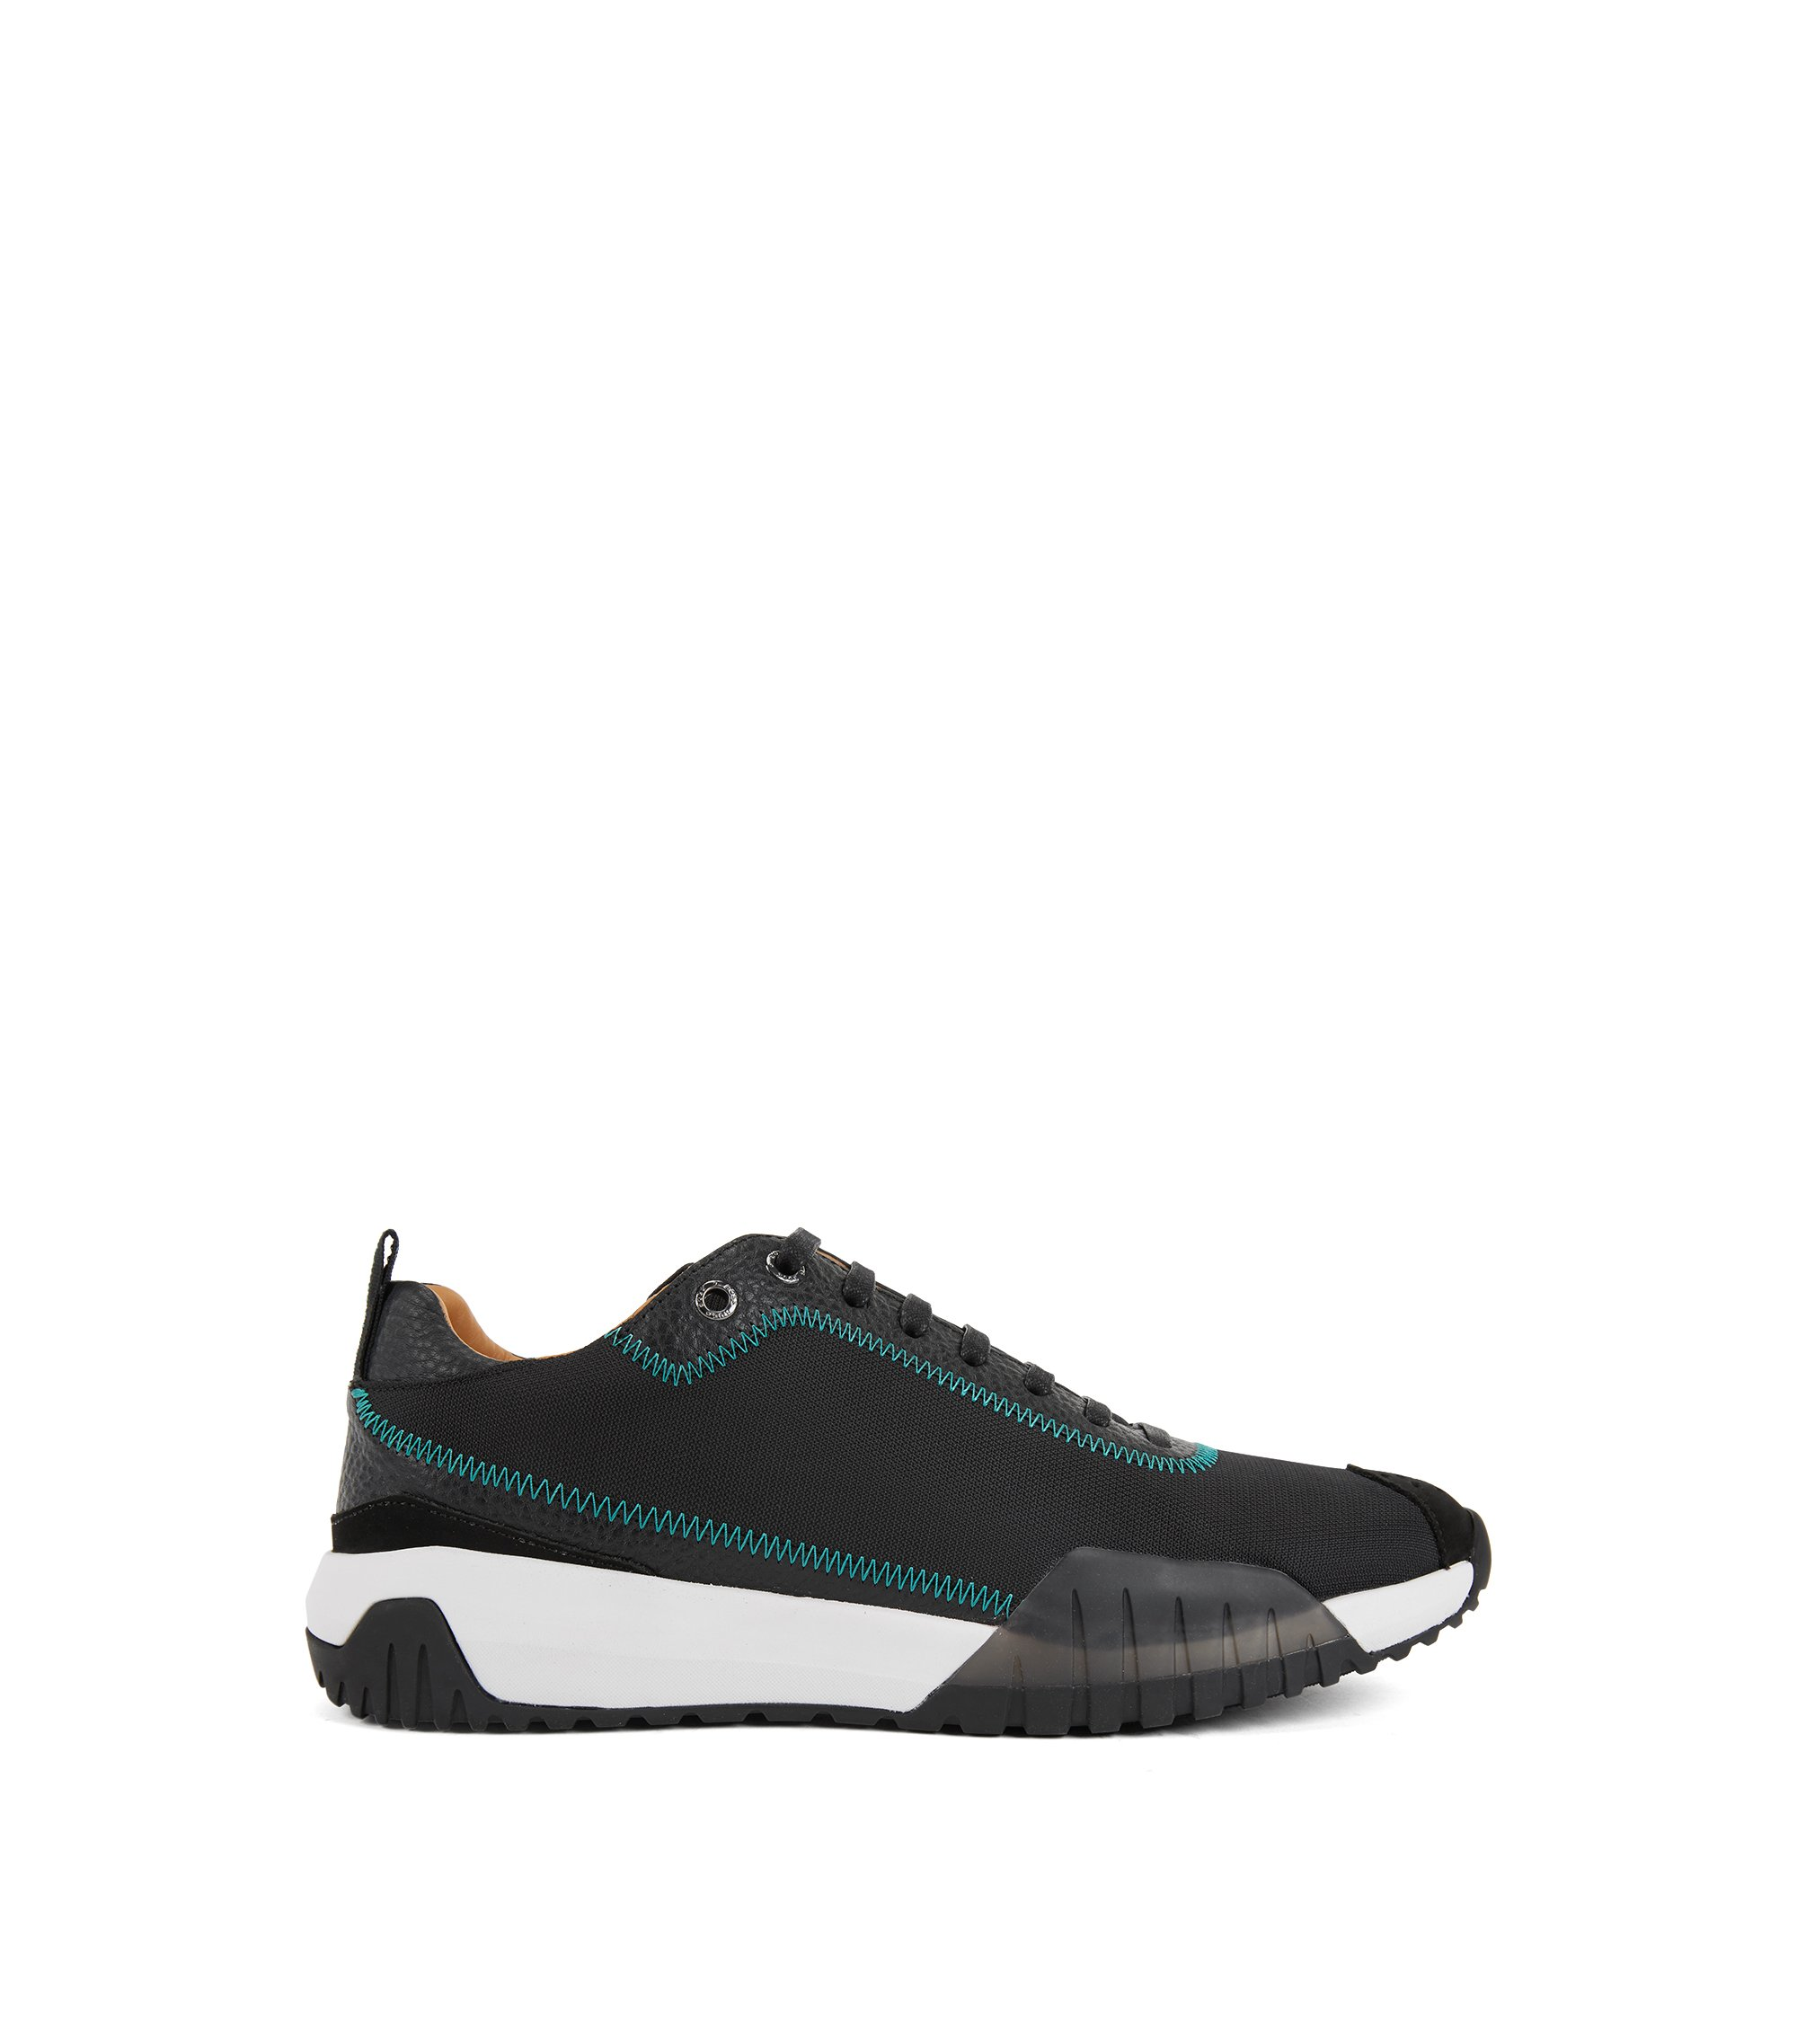 Low-top sneakers in nylon with leather details, Black